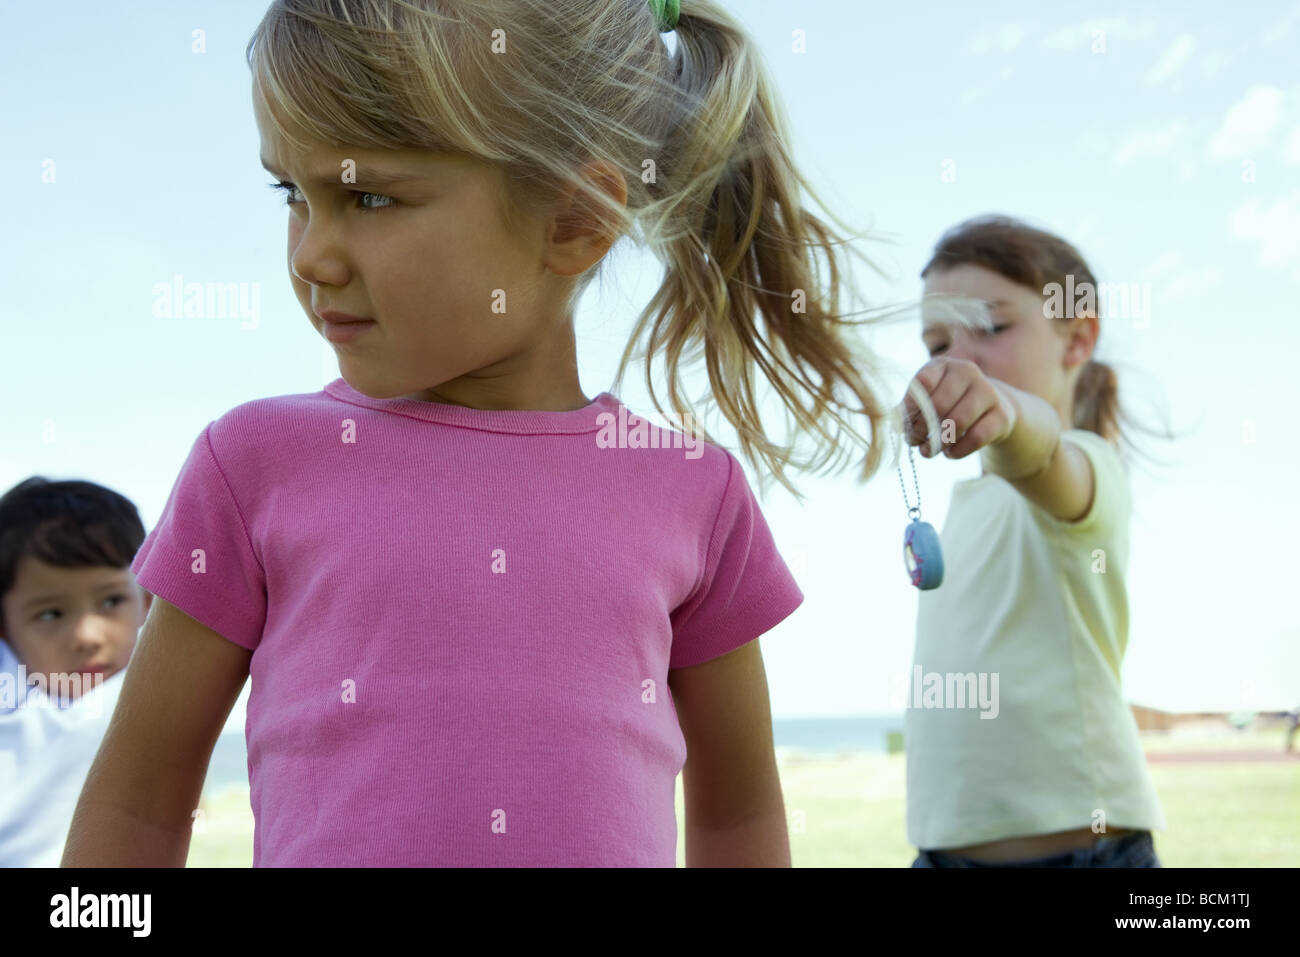 Three children outside, girl in foreground turning head while girl in background holds out toy to her - Stock Image